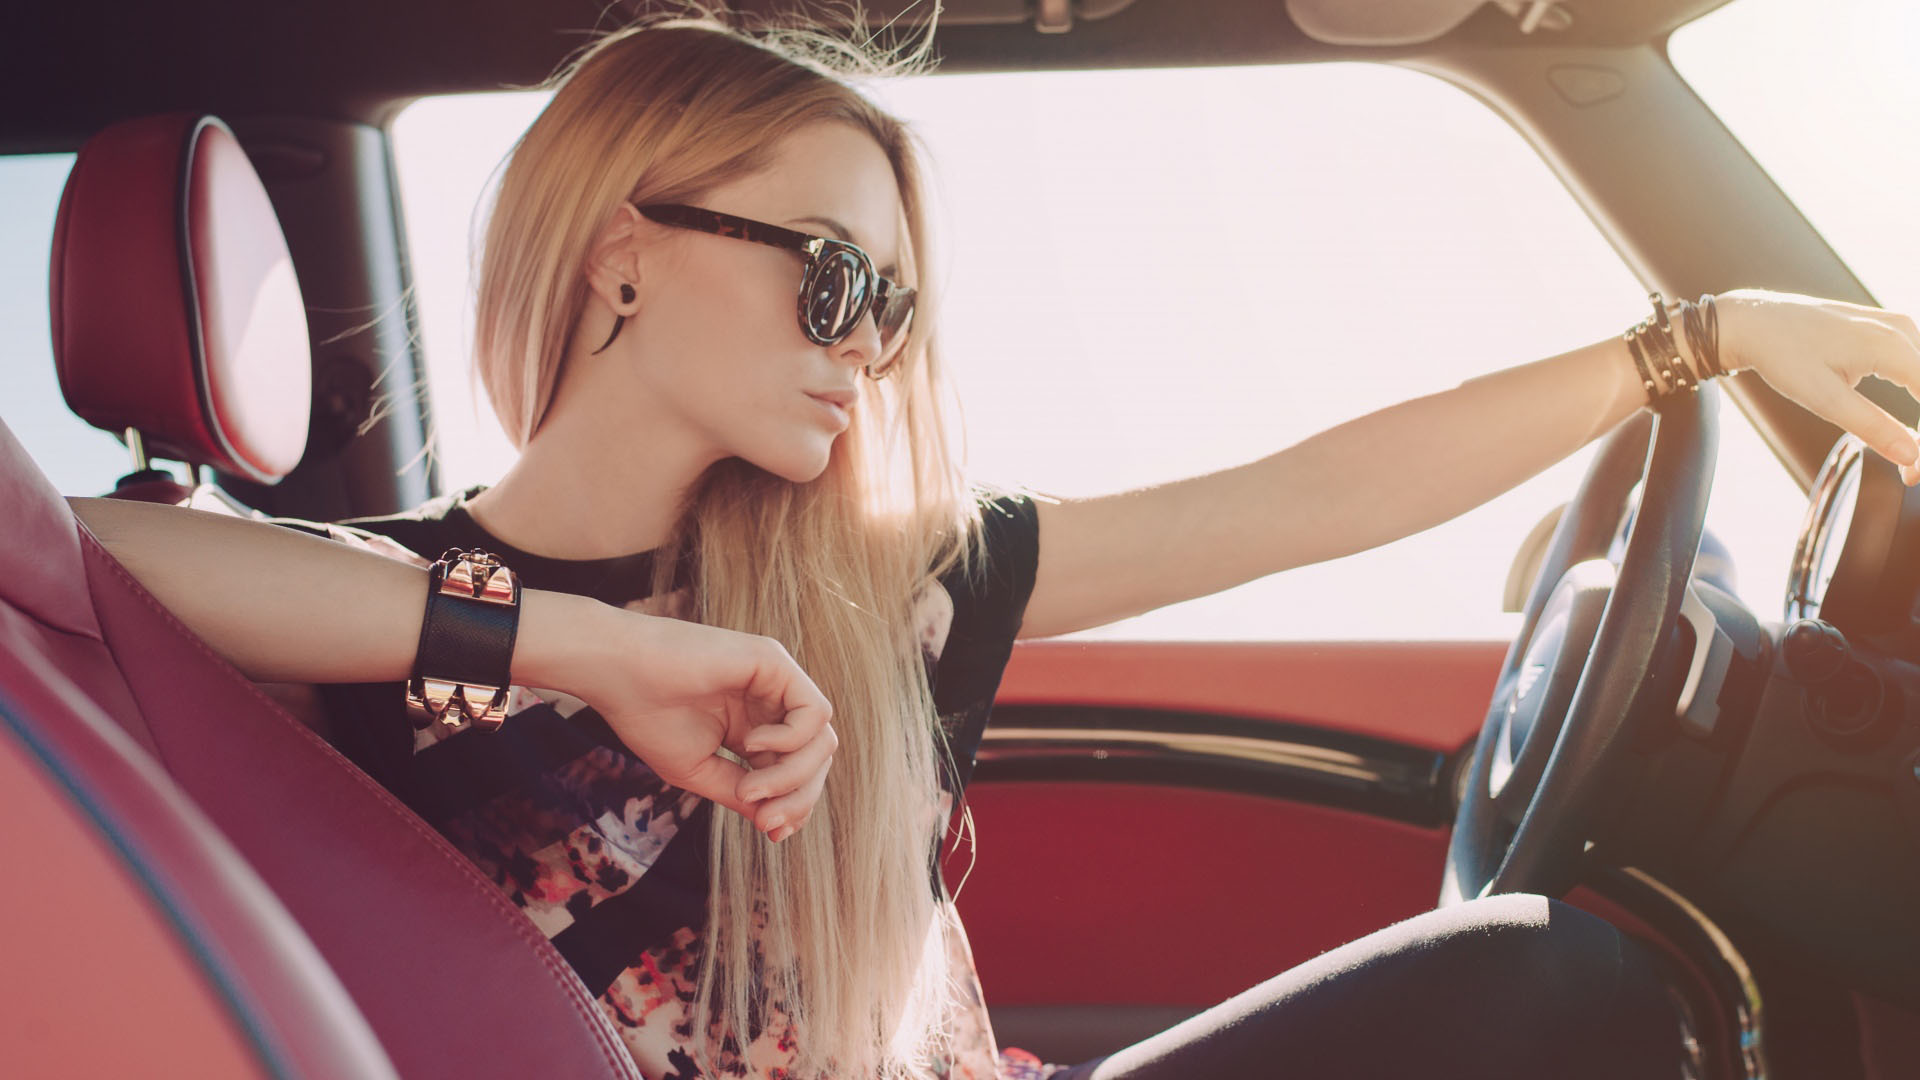 cute-girly-wallpapers-model-fashion